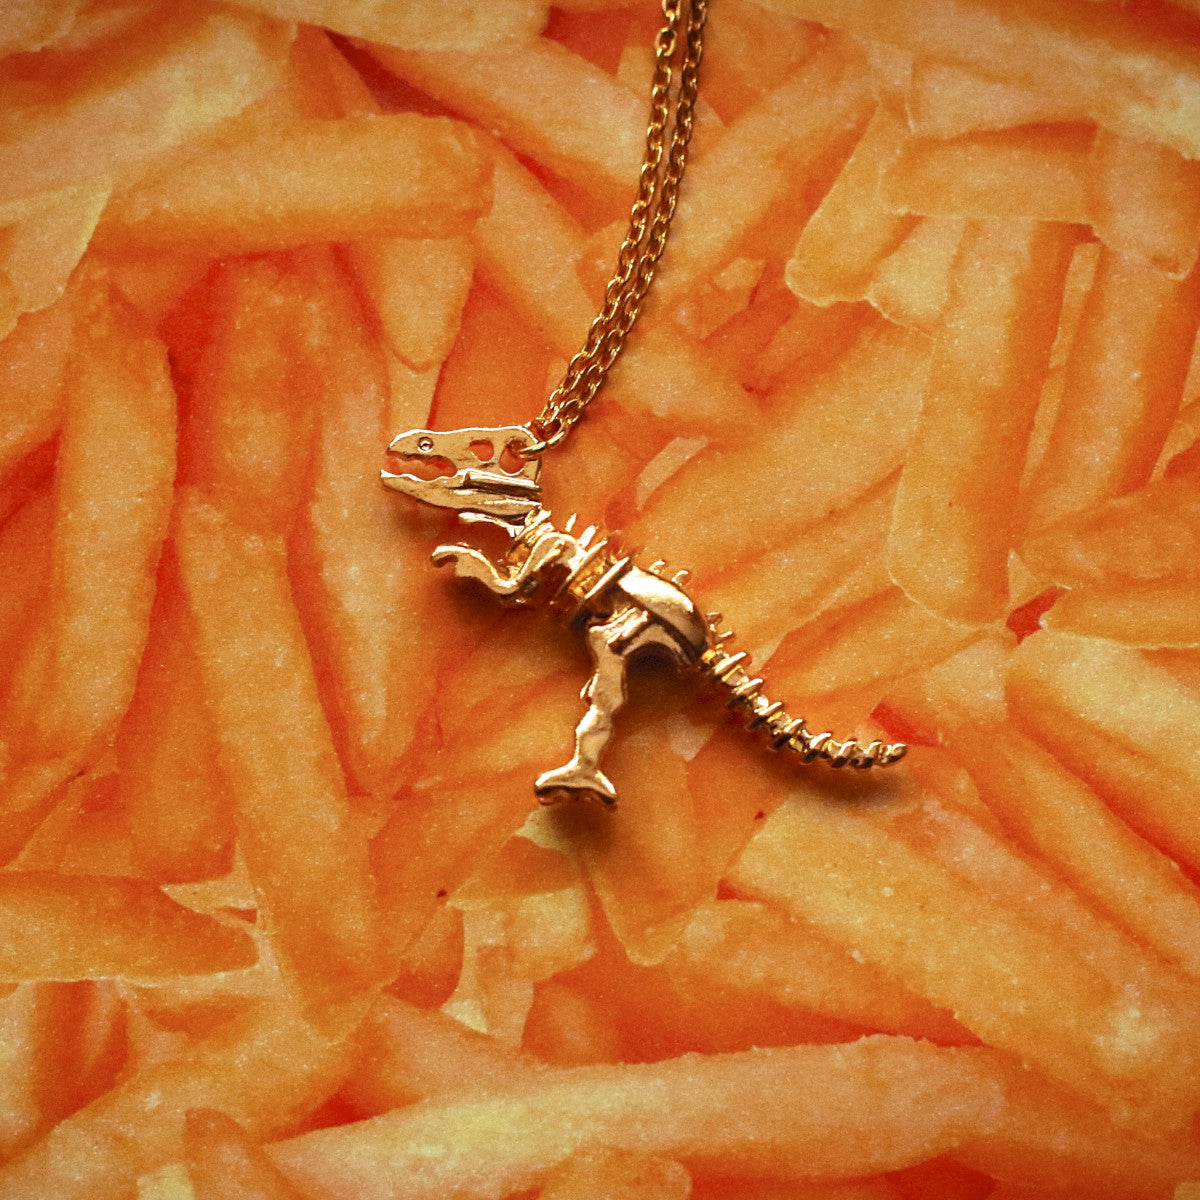 Gold T-rex dinosaur skeleton necklace - Ice Cream Cake